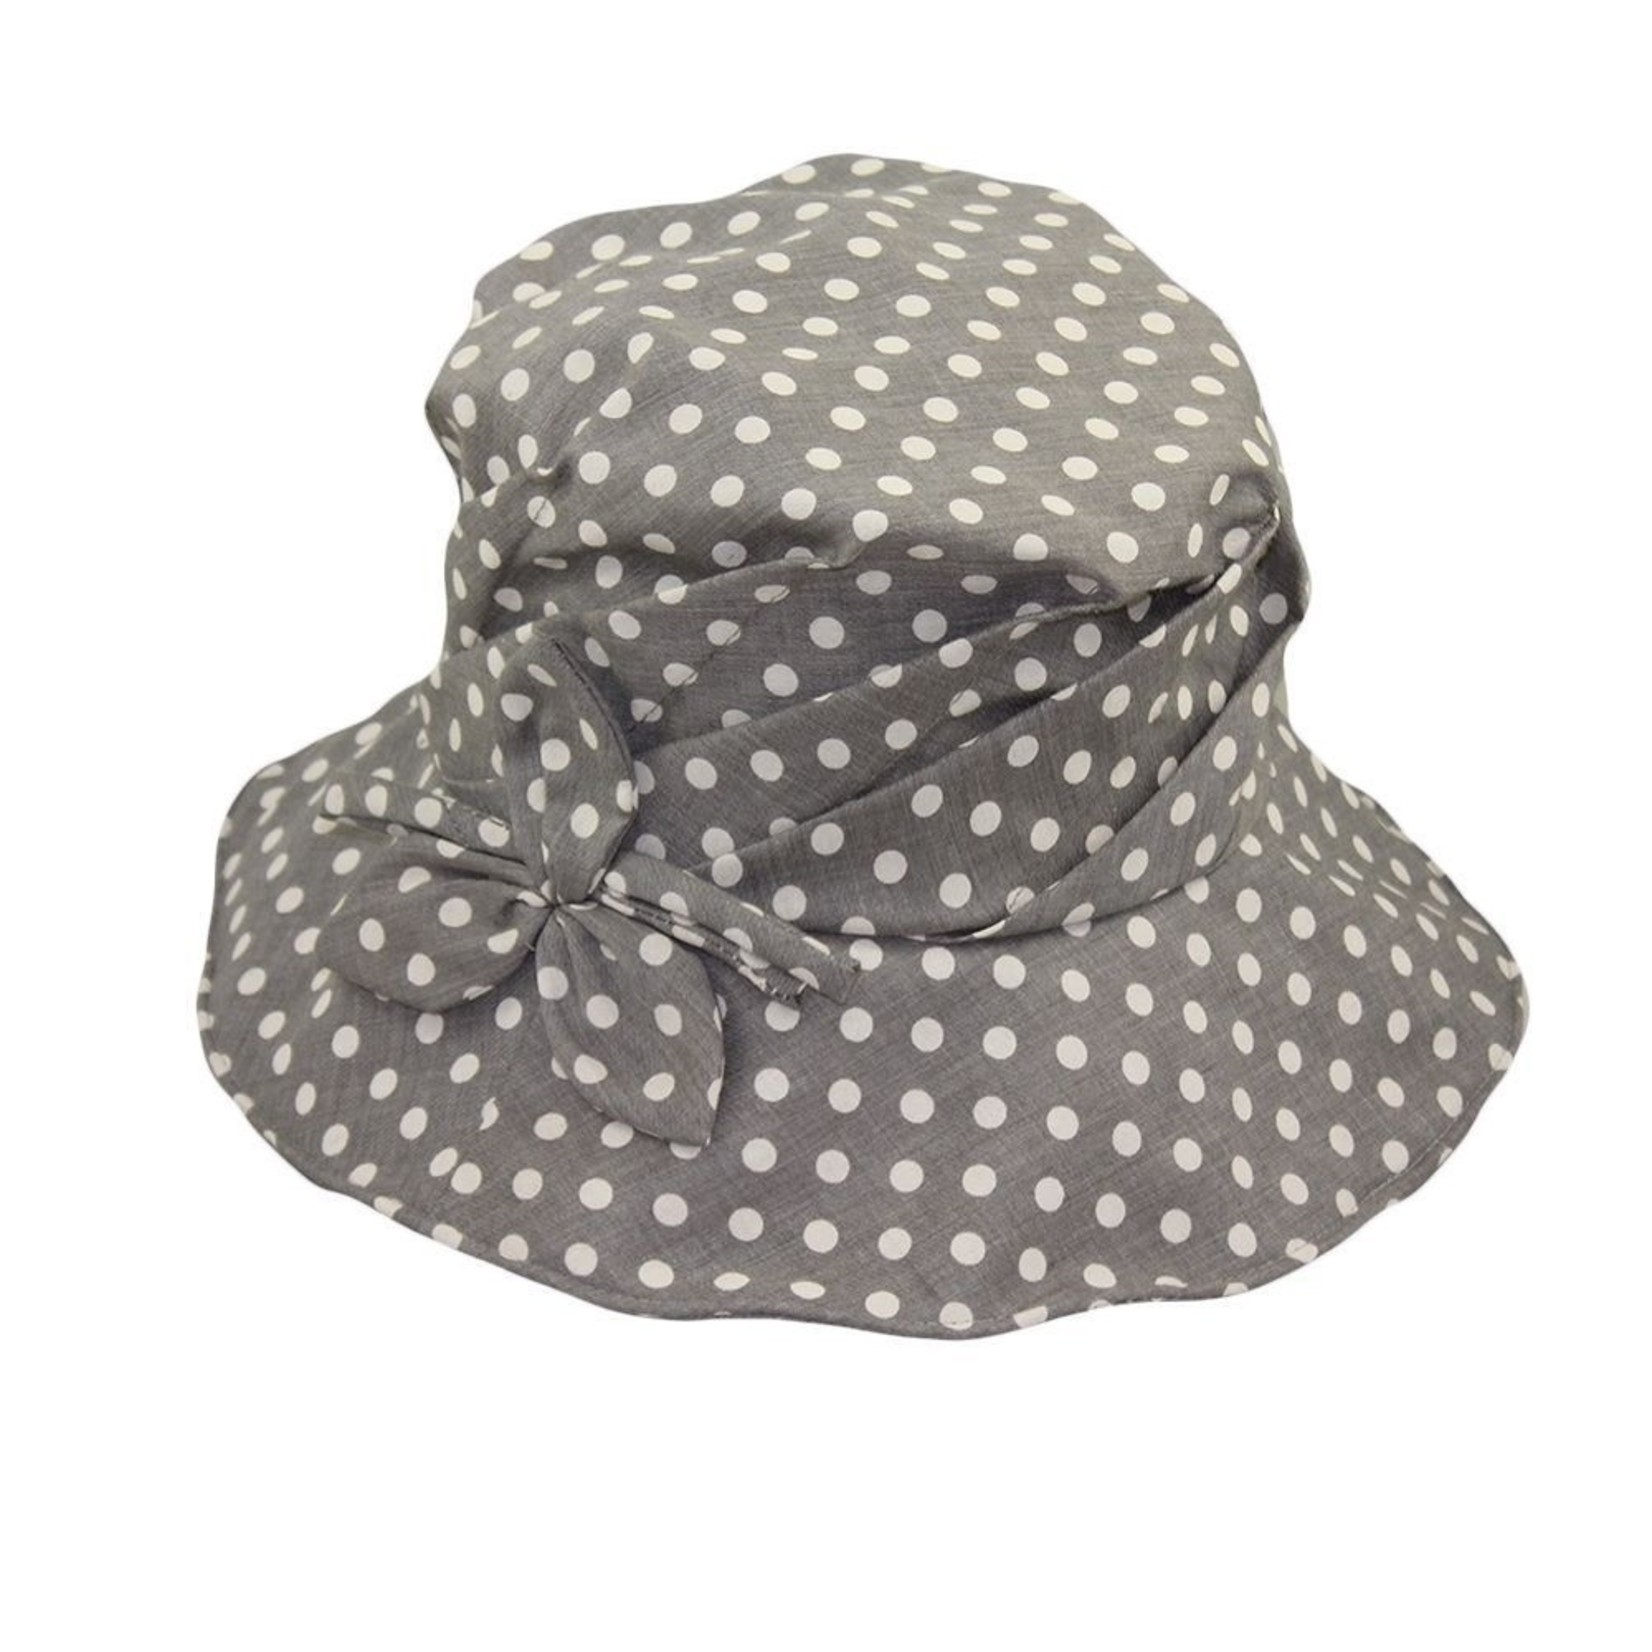 Jeanne Simmons Grey and White Polka Dot Hat w/ Flower Detail